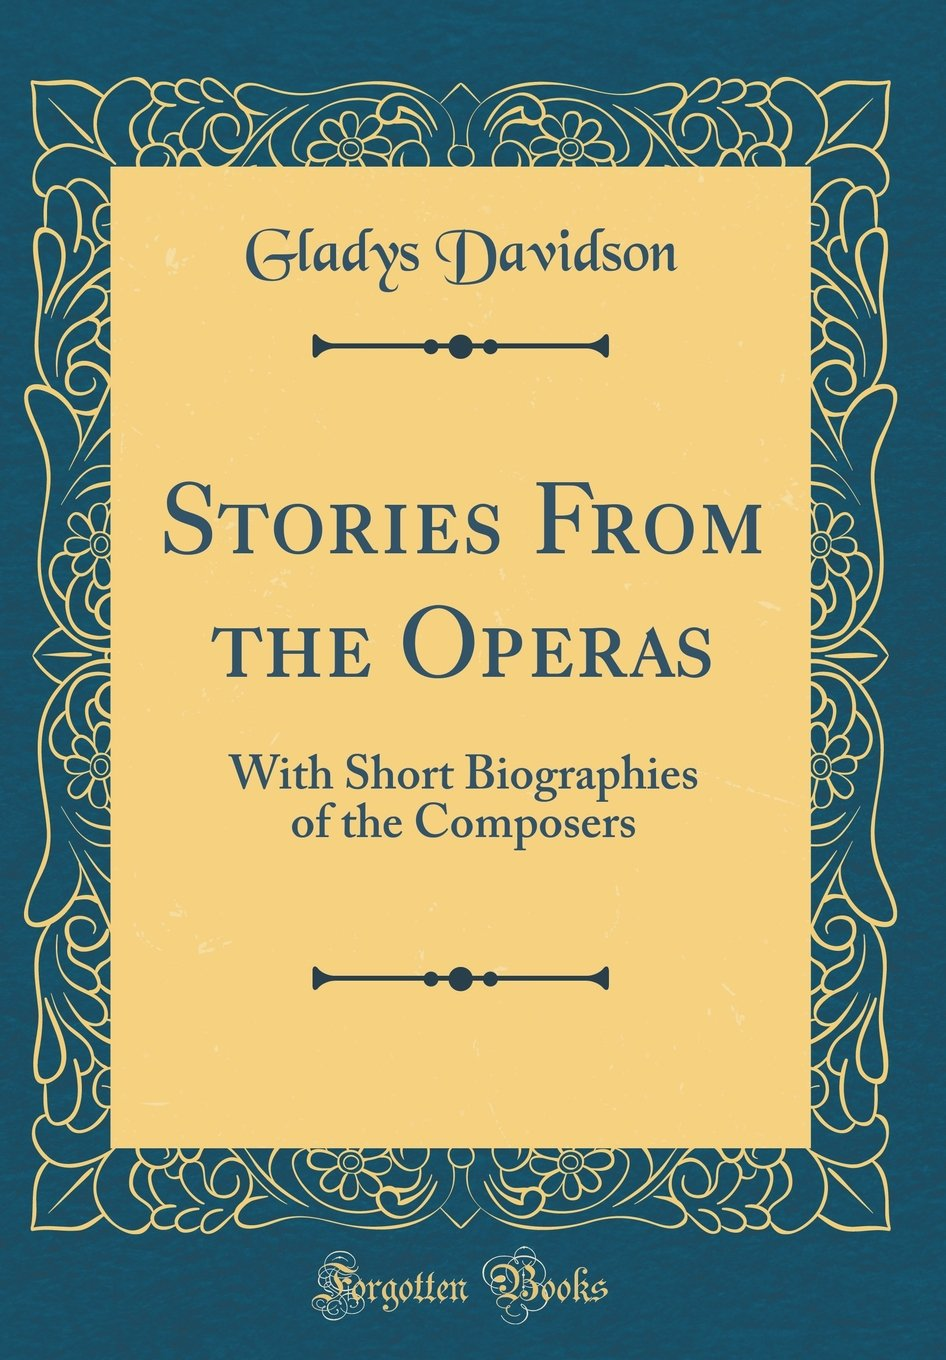 Stories from the Operas: Volume I - With Short Biographies of the Composers